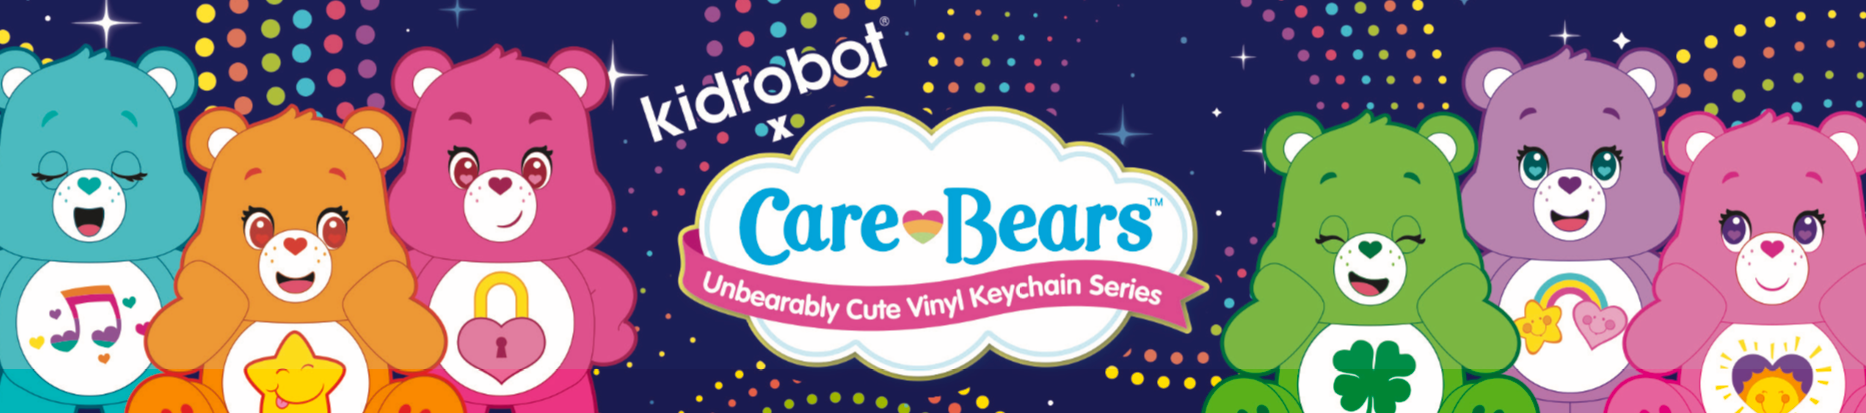 Care Bears by Kidrobot